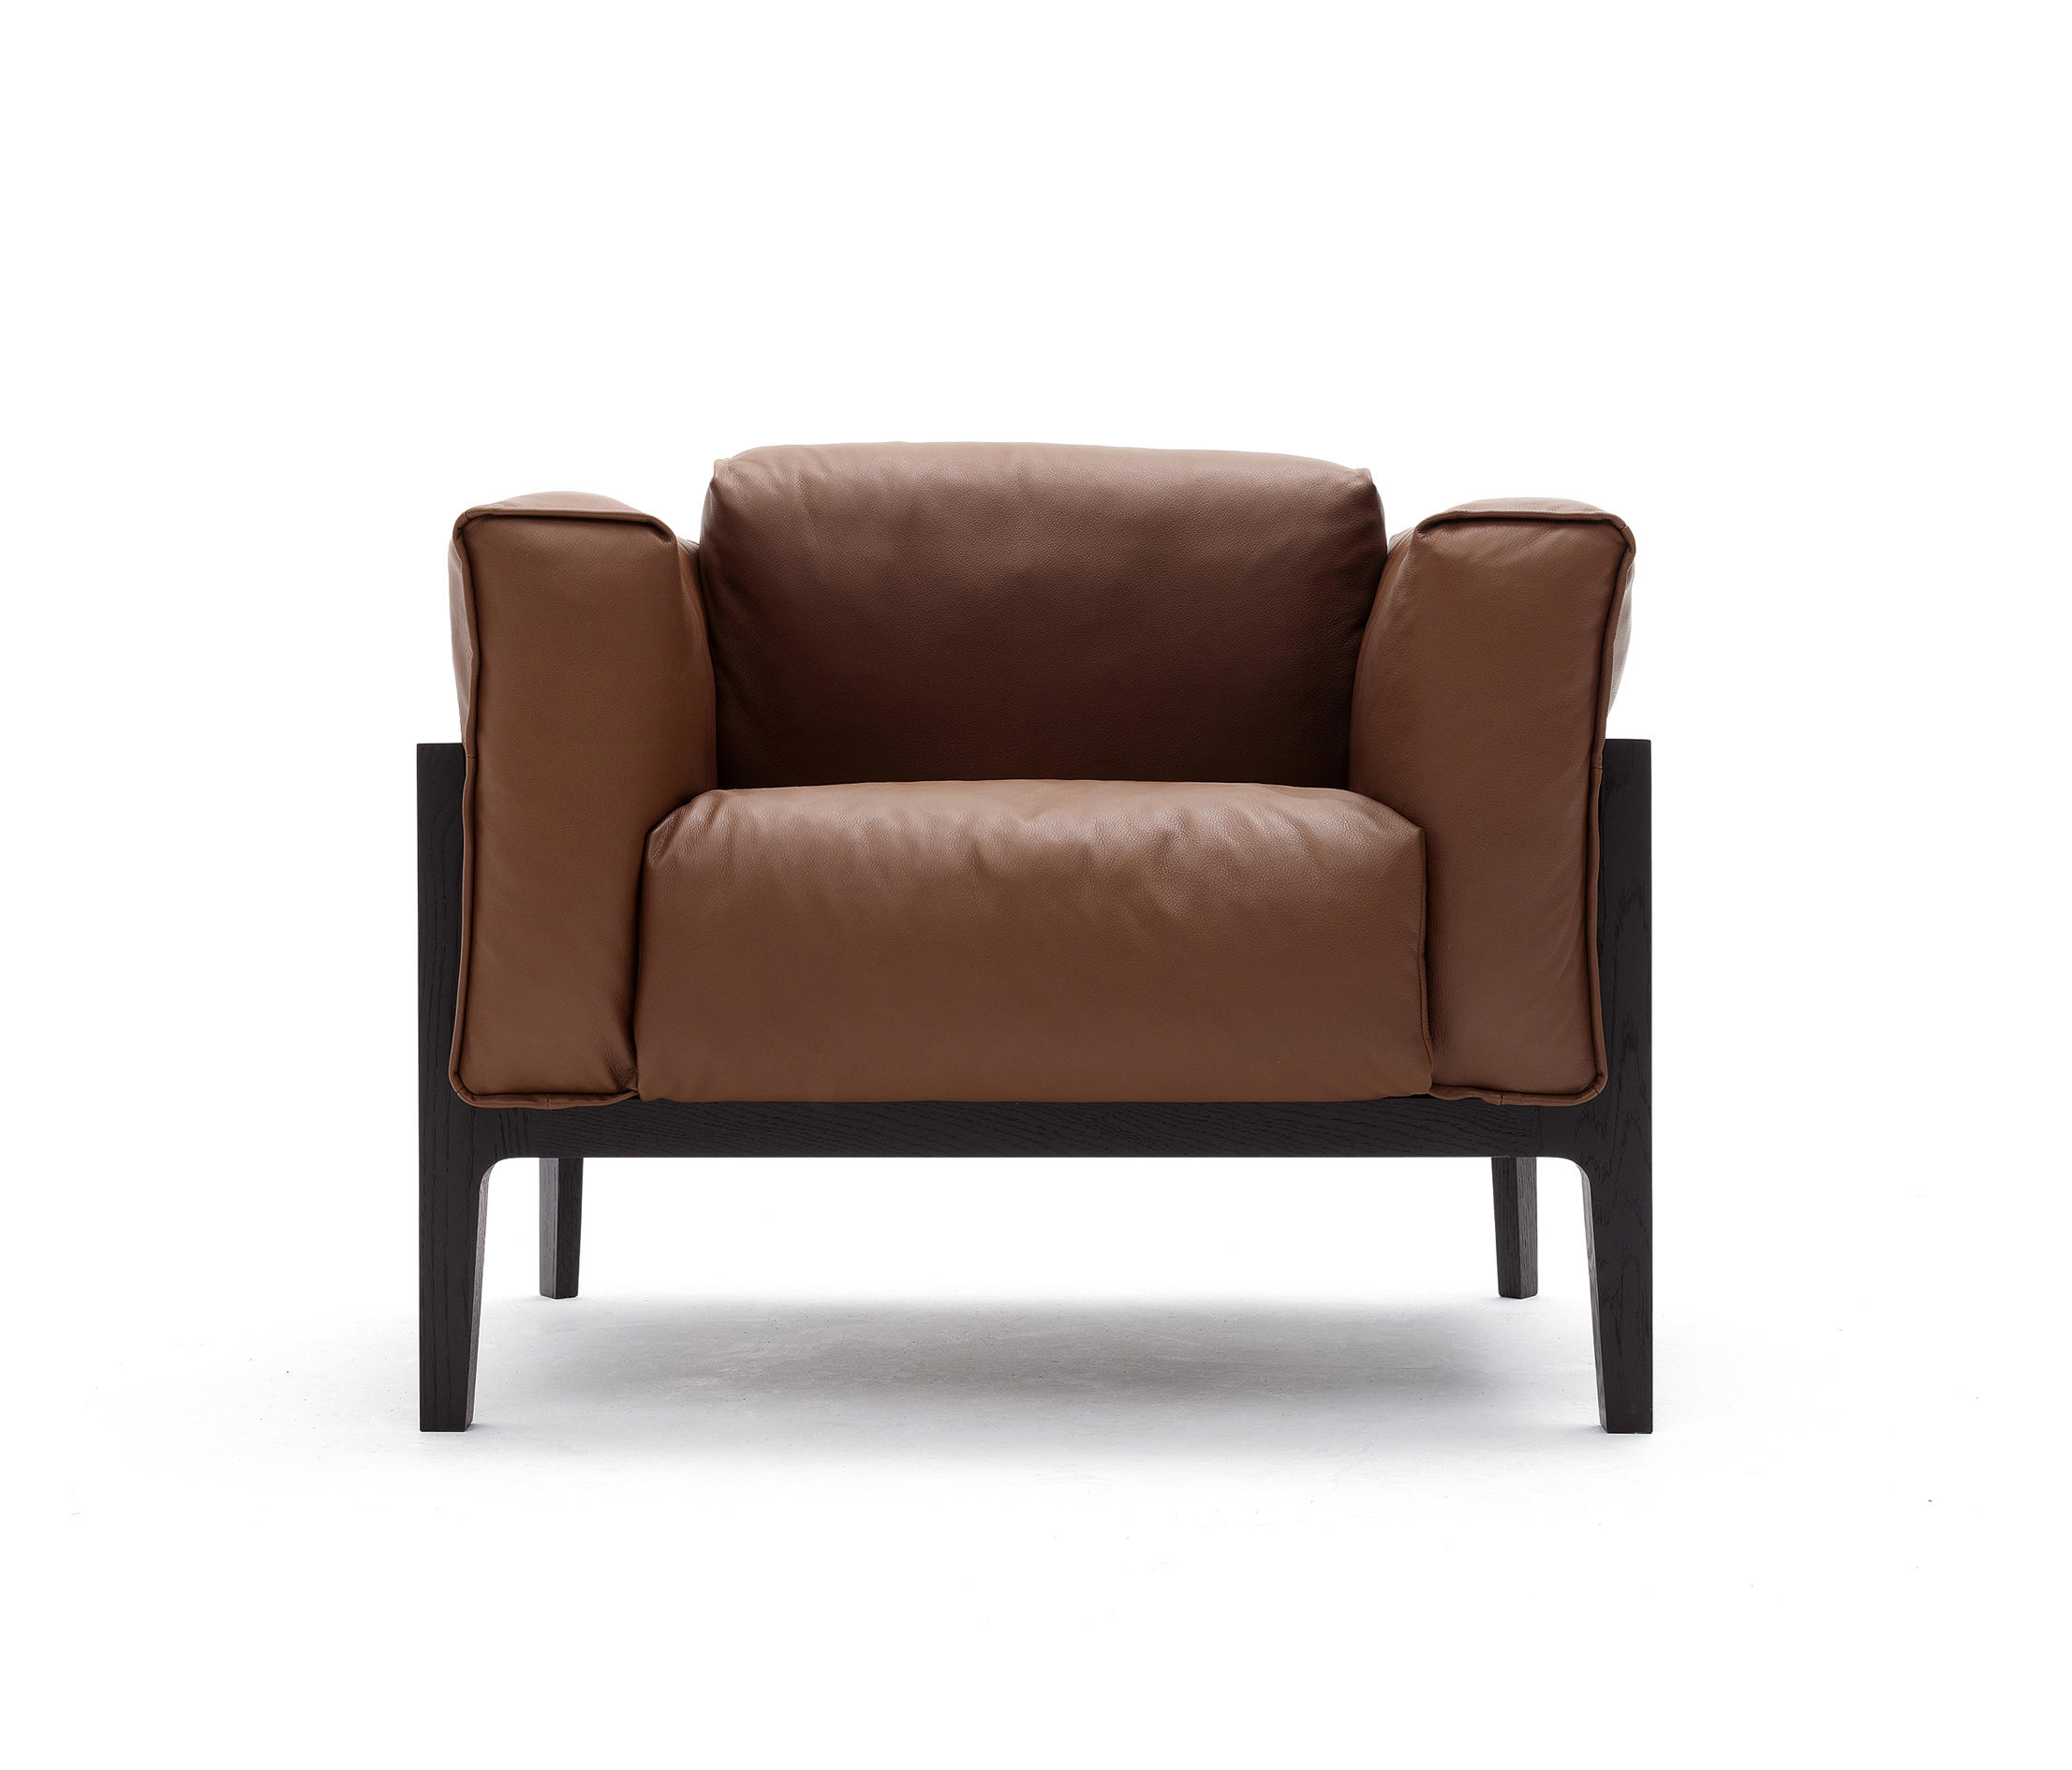 elm armchair lounge chairs from cor architonic. Black Bedroom Furniture Sets. Home Design Ideas